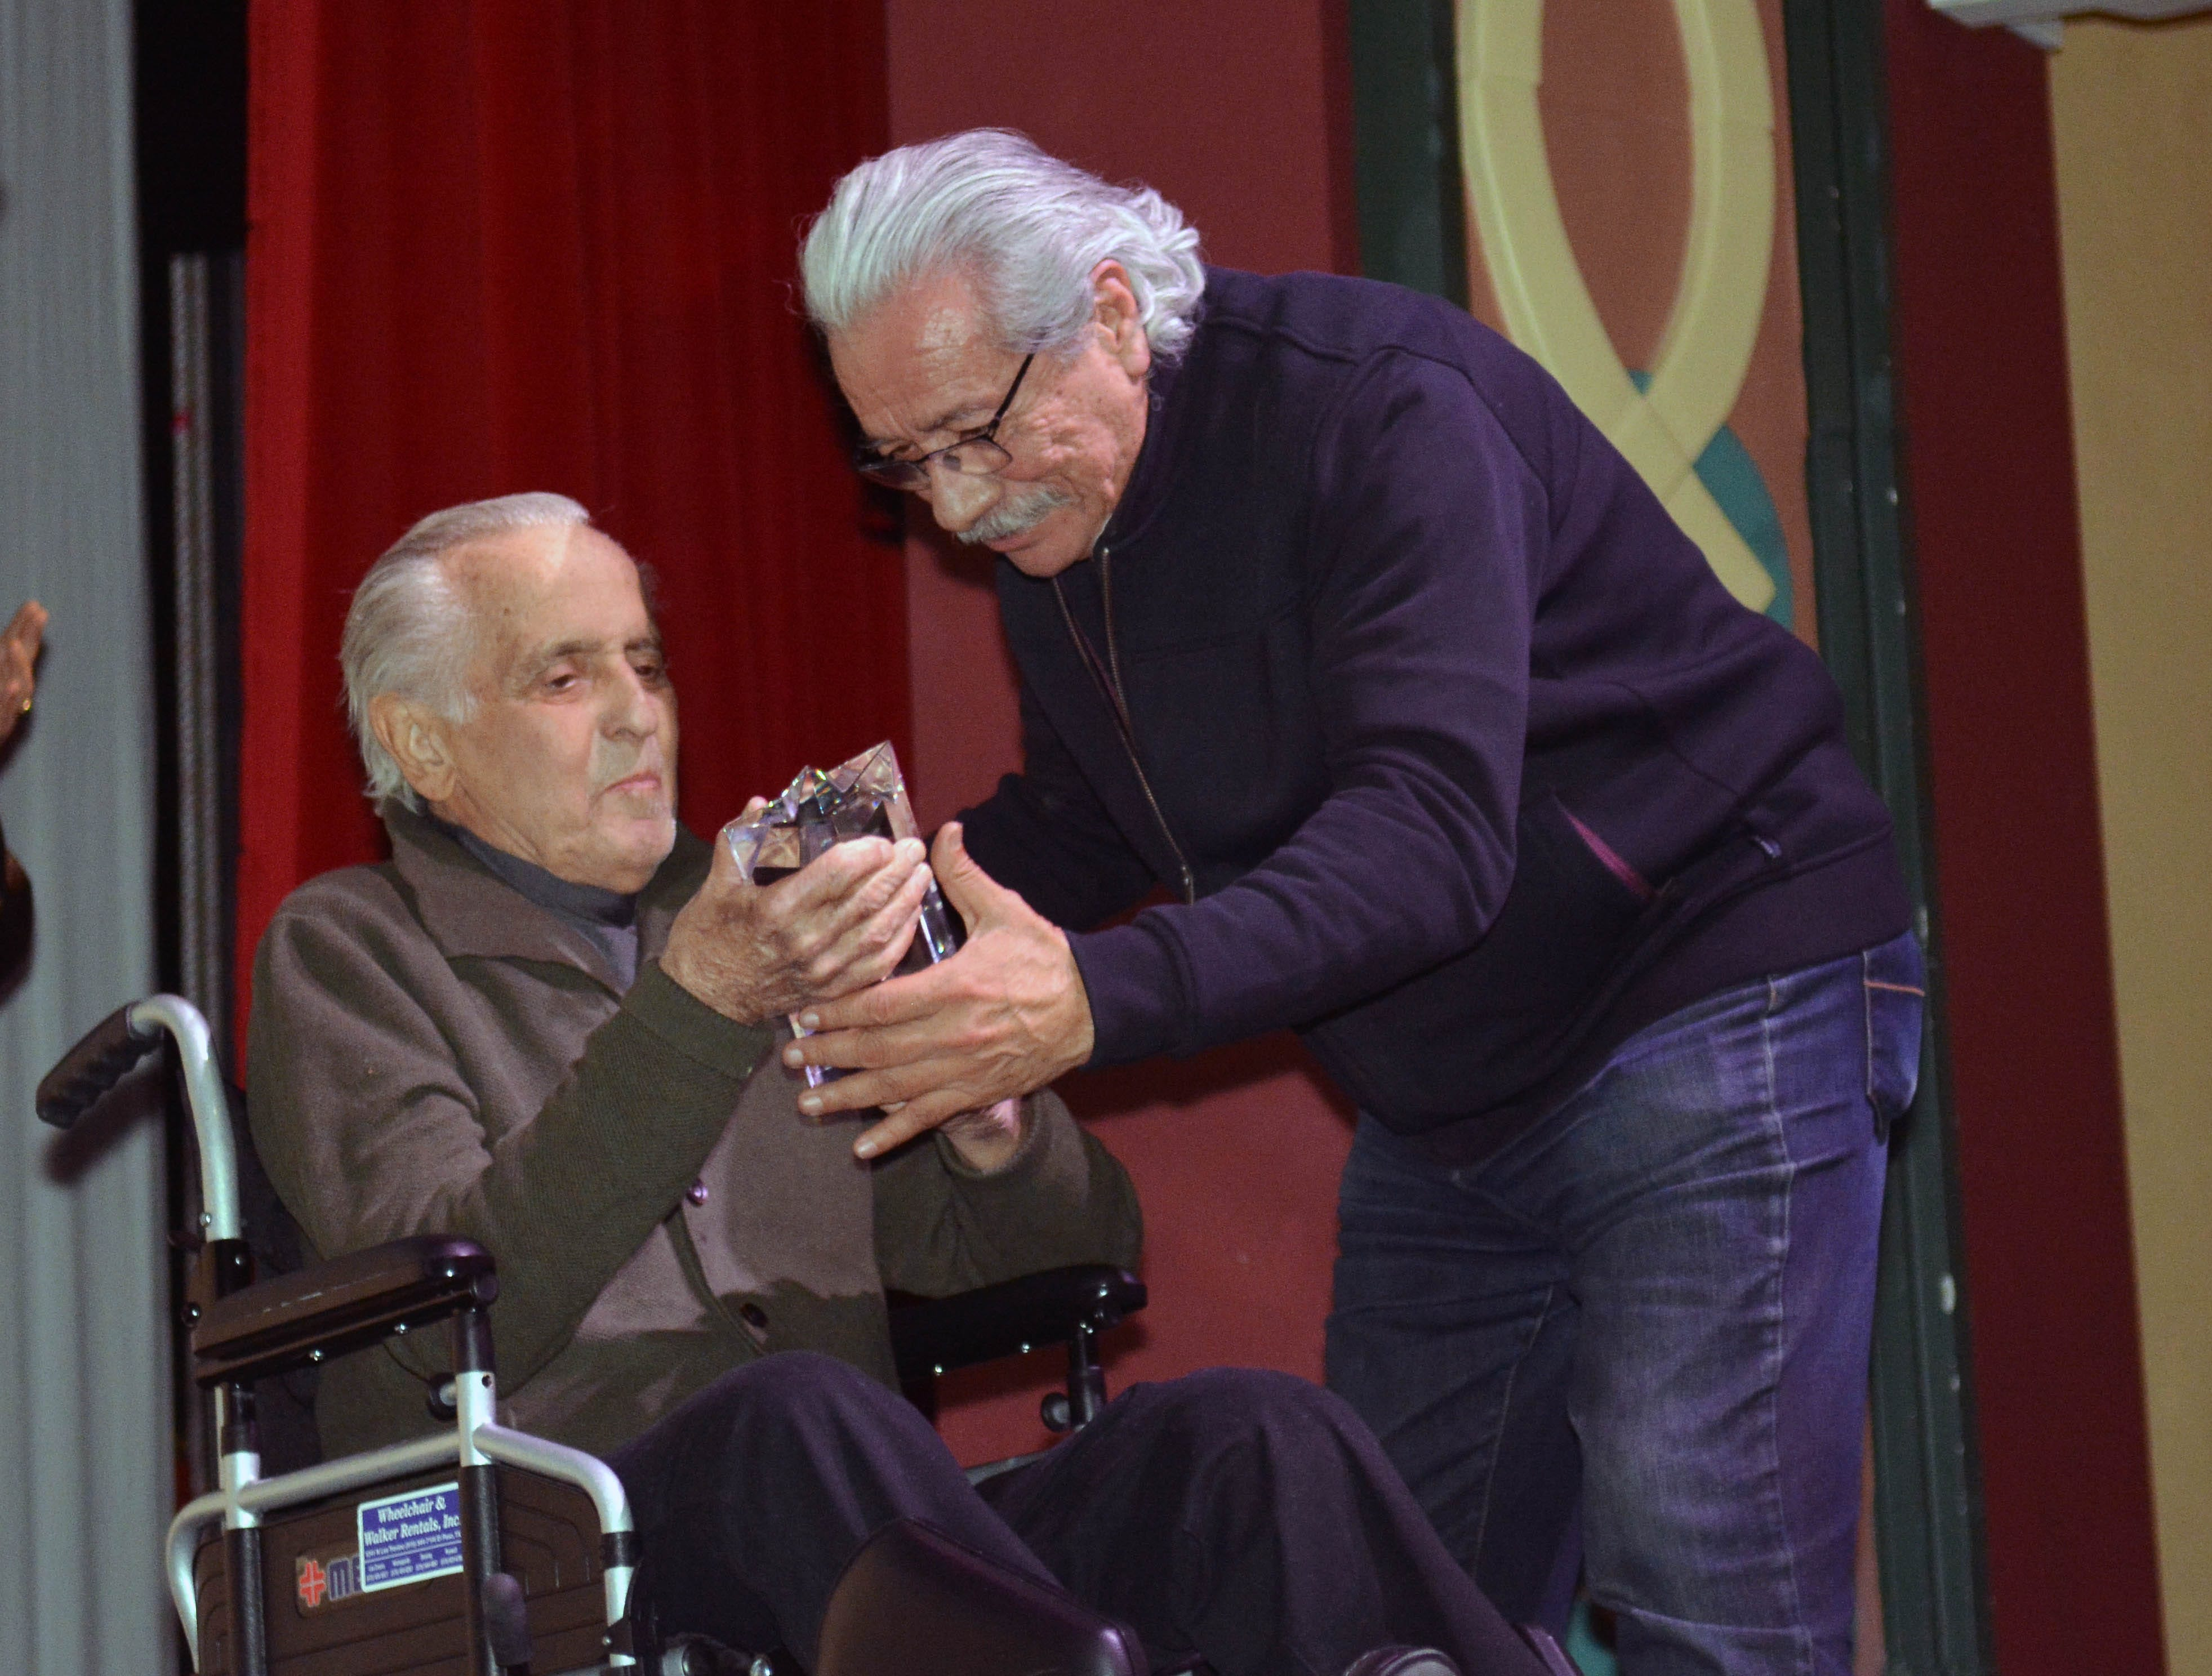 """Mark Medoff, left, presents Edward James Olmos with the Las Cruces International Film Festival's Mark Medoff Humanitarian Award at Tuesday's screening of """"The Ballad of Gregorio Cortez"""" at the Rio Grande Theatre."""